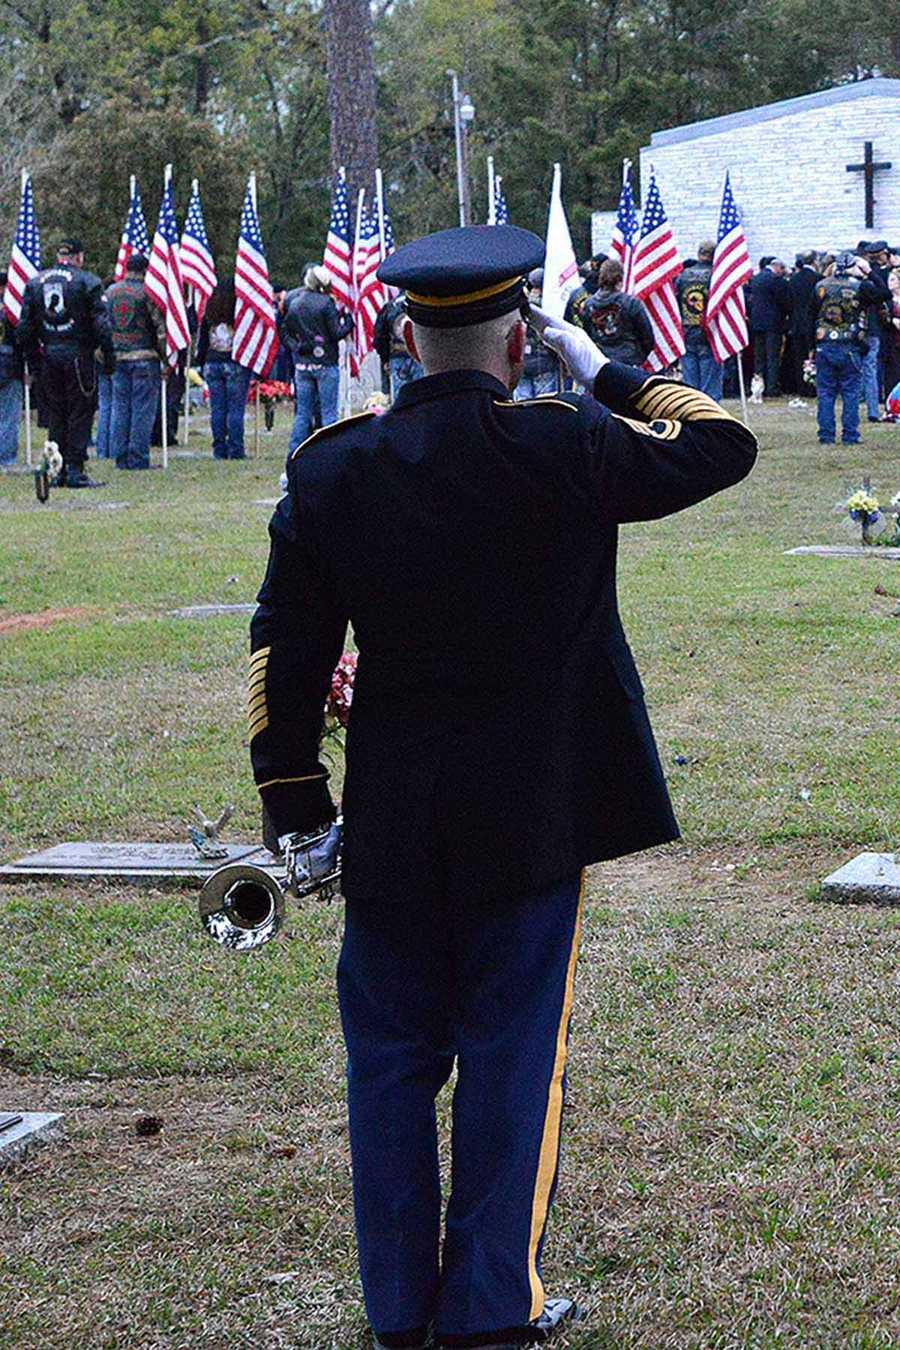 The bugler for the Louisiana National Guards salutes to honor fallen Soldier Chief Warrant Officer 4 George David Strother at Alexandria Memorial Gardens in Alexandria, La.